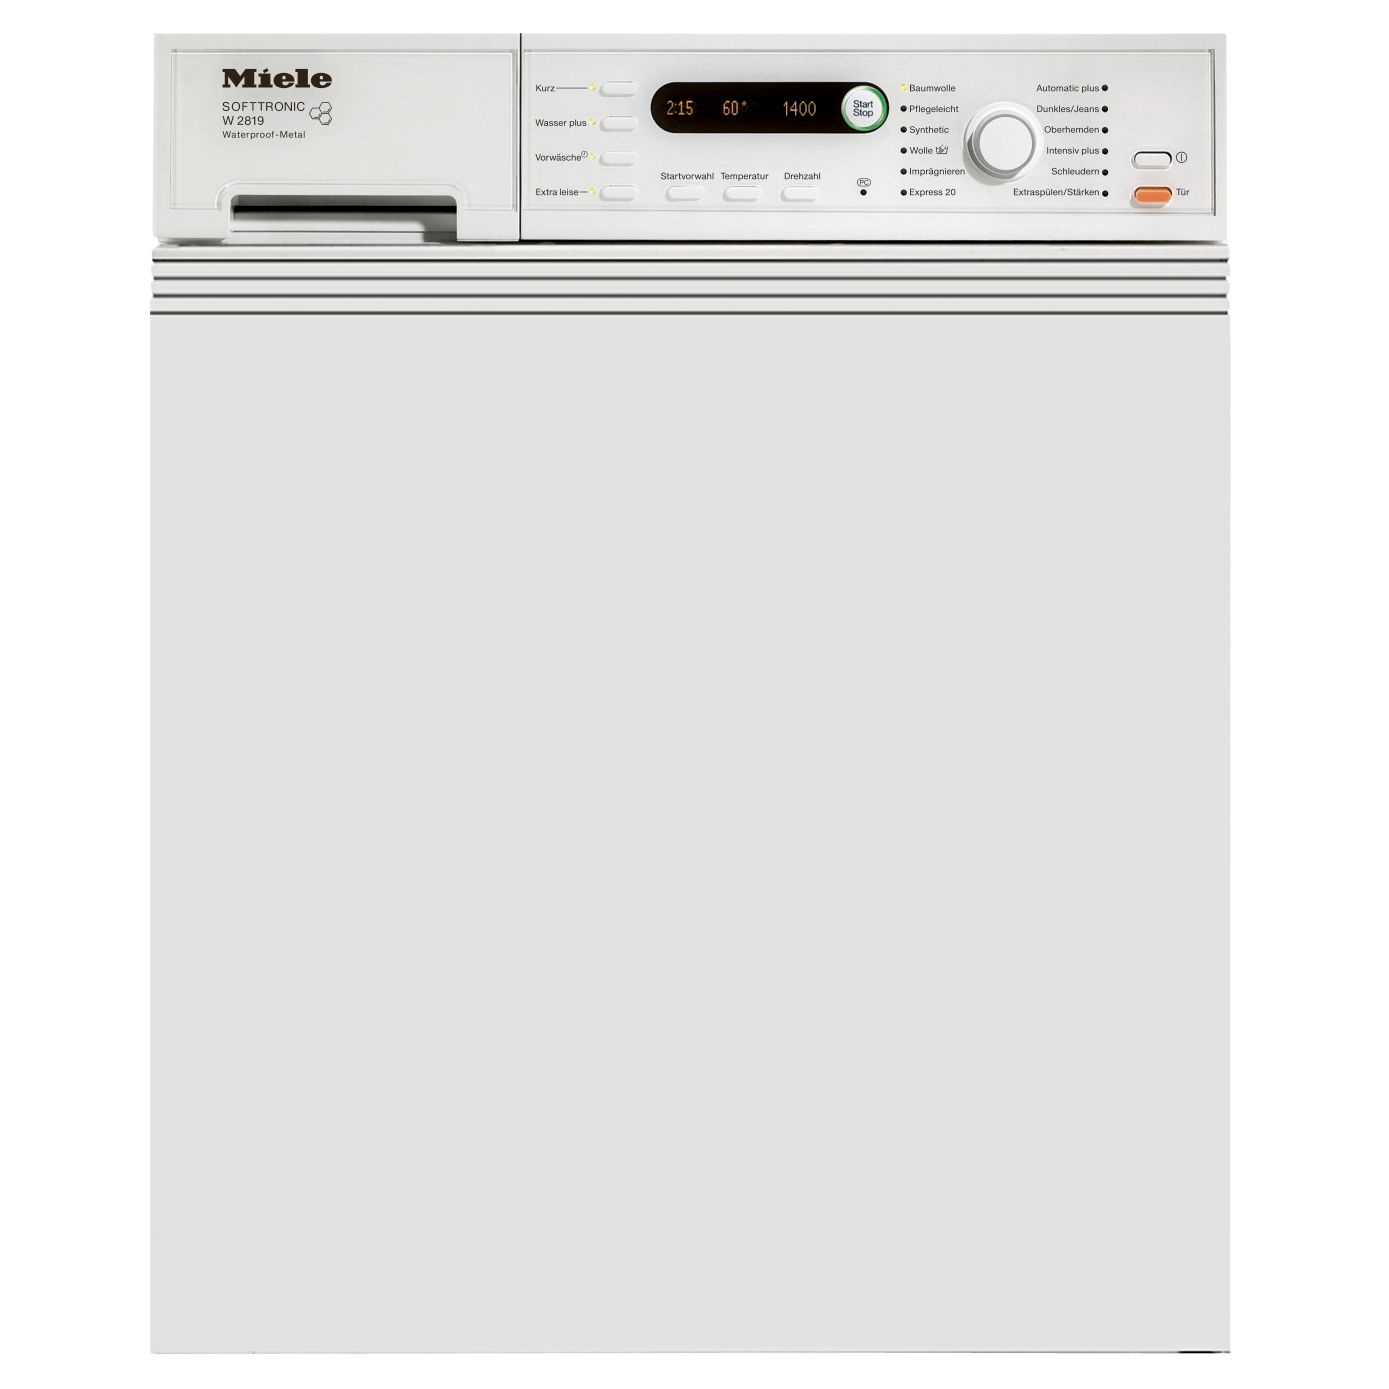 Miele W2819i Semi-Integrated Washing Machine, 5.5kg Load, A+ Energy Rating, 1400rpm Spin, White